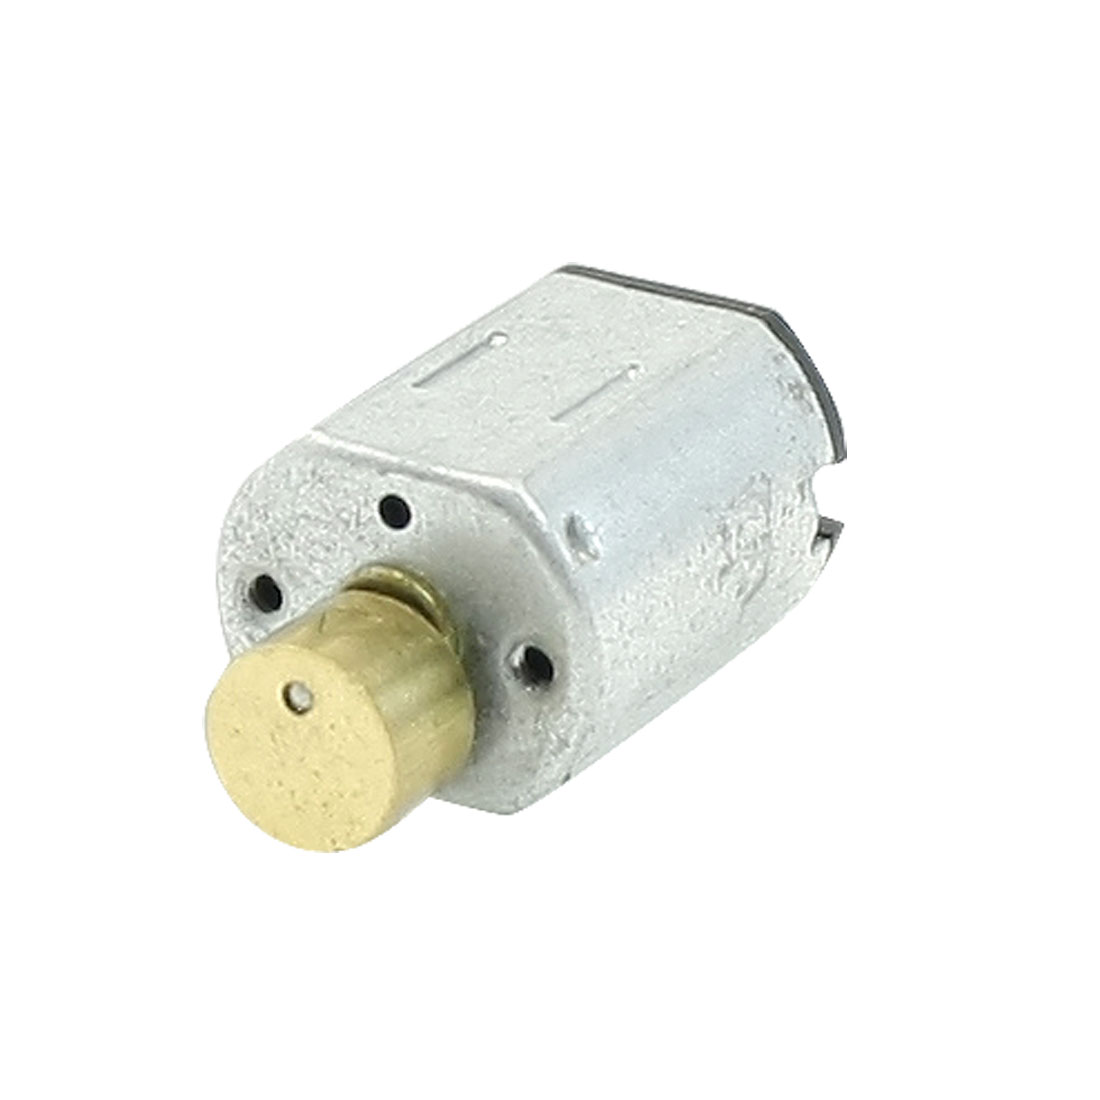 DC-1-5V-1200RPM-2-Pin-Connecting-Cylinder-Mini-Massager-Vibrating-Motor